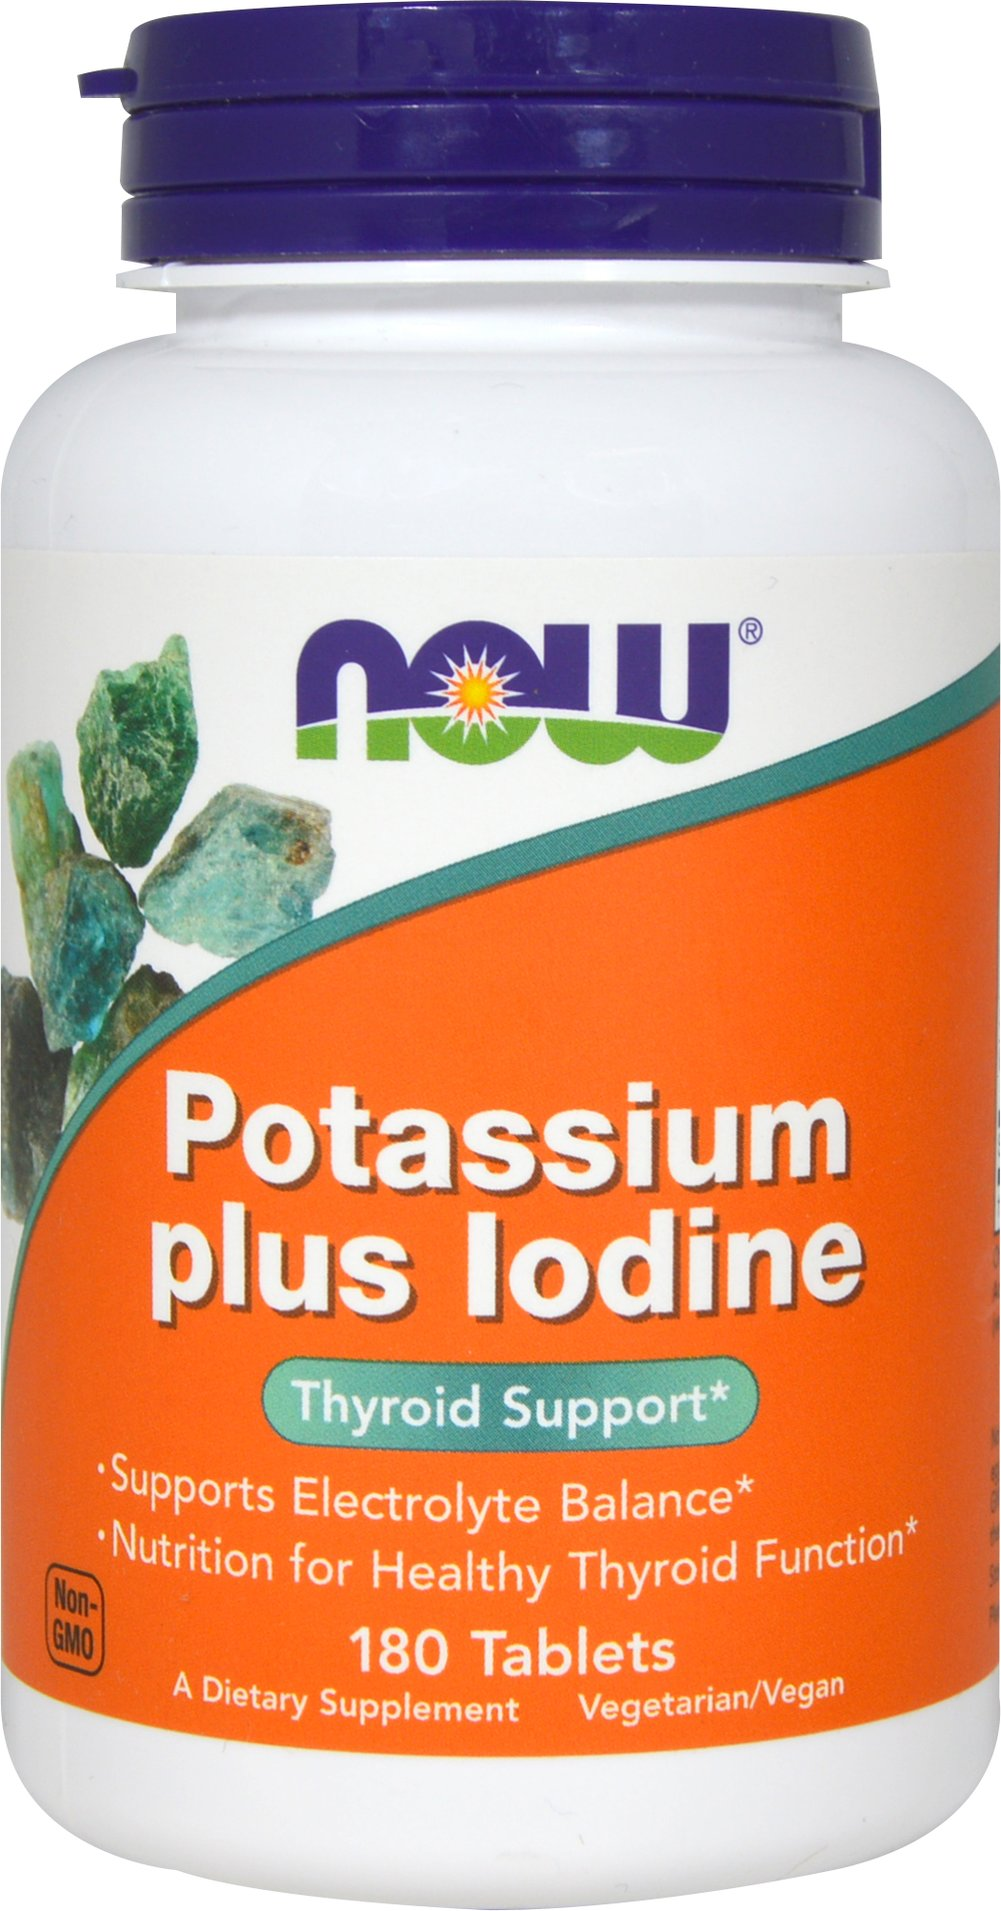 Potassium plus Iodine  180 Tablets  $6.99